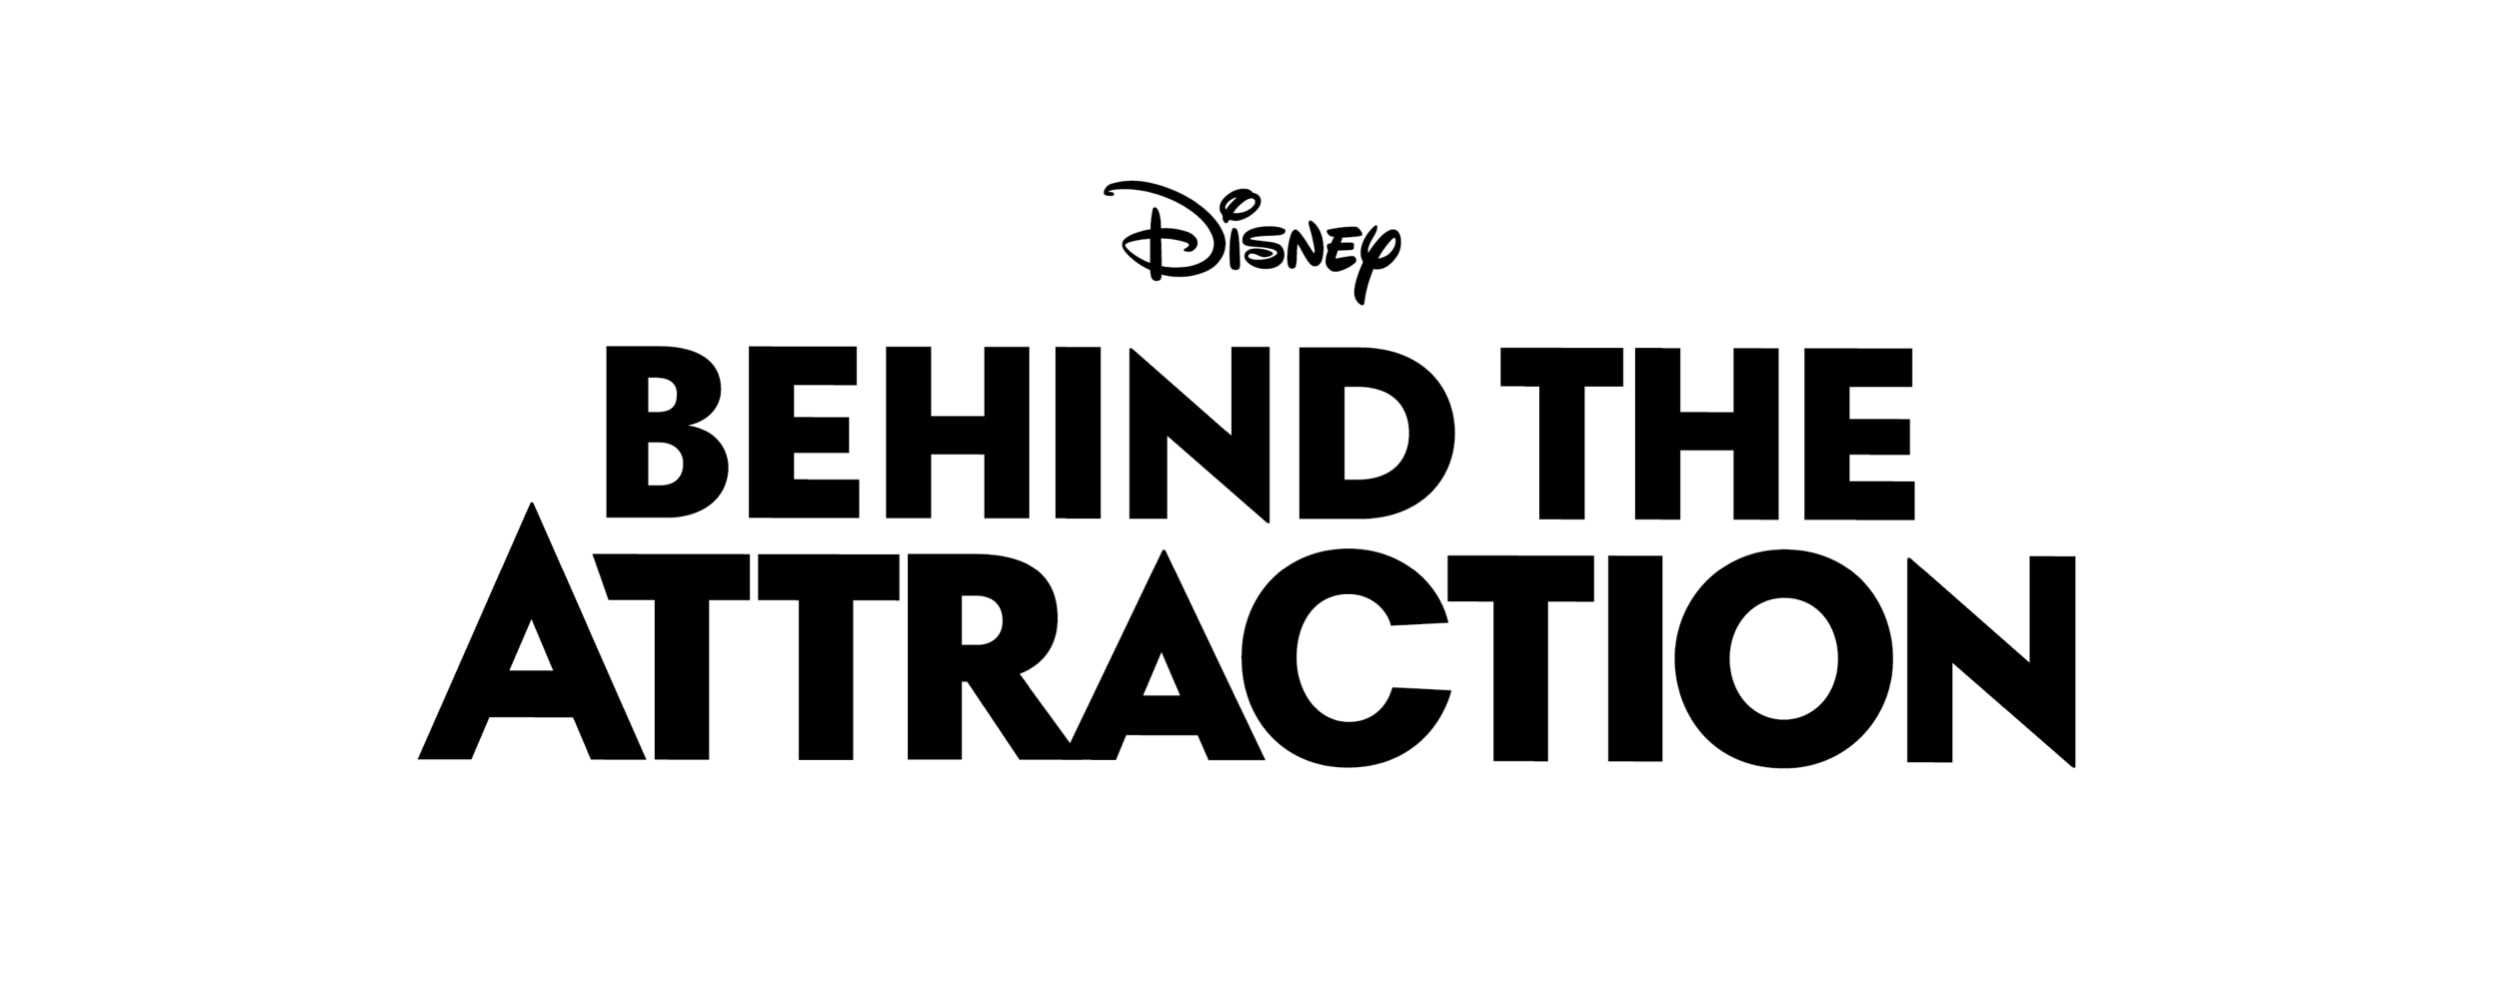 Behind the Attraction Media Kit